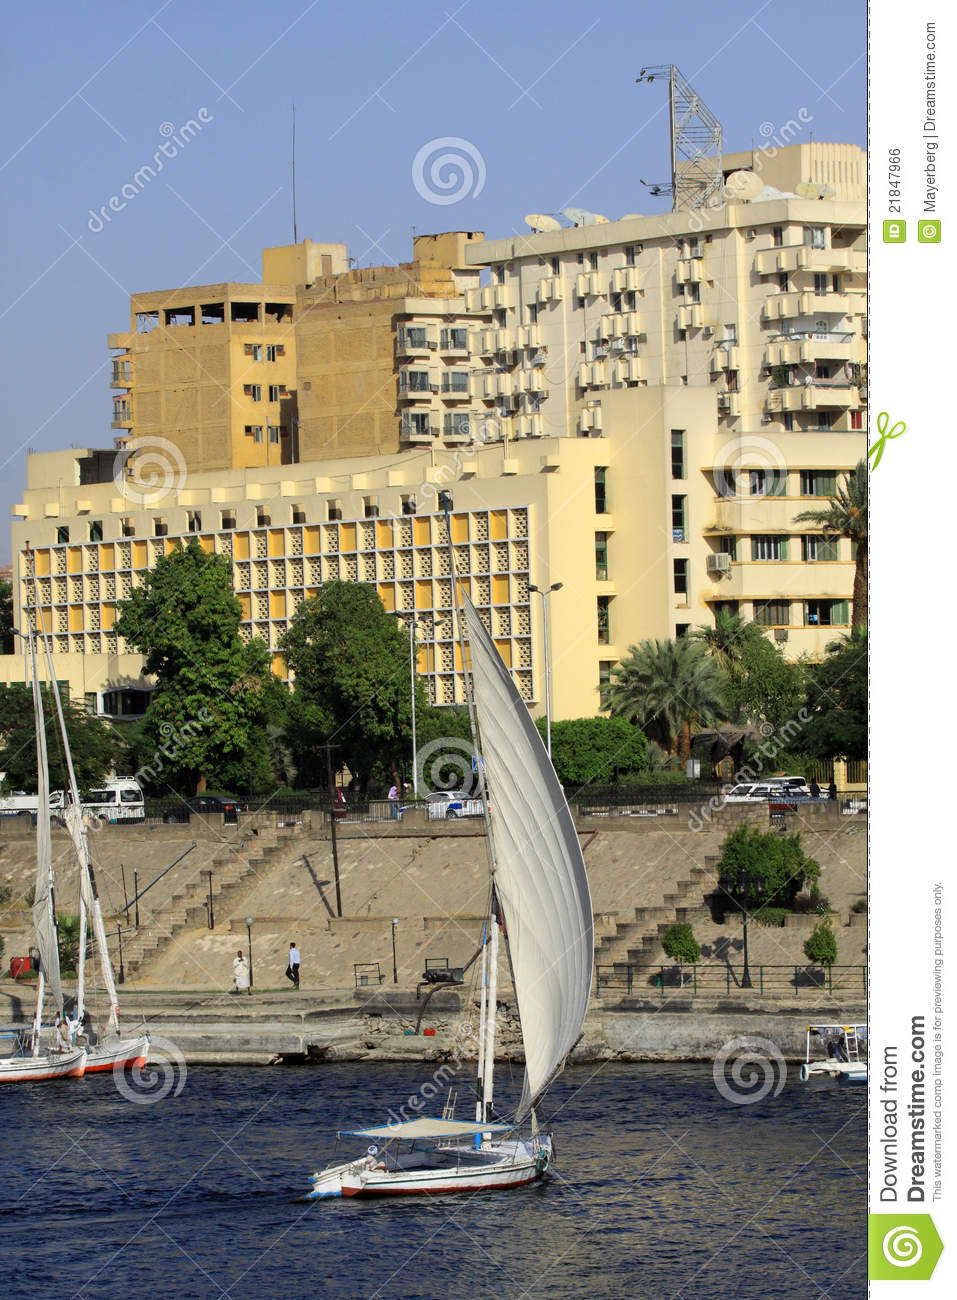 Aswan Egypt  city pictures gallery : Aswan Egypt Royalty Free Stock Image Image: 21847966